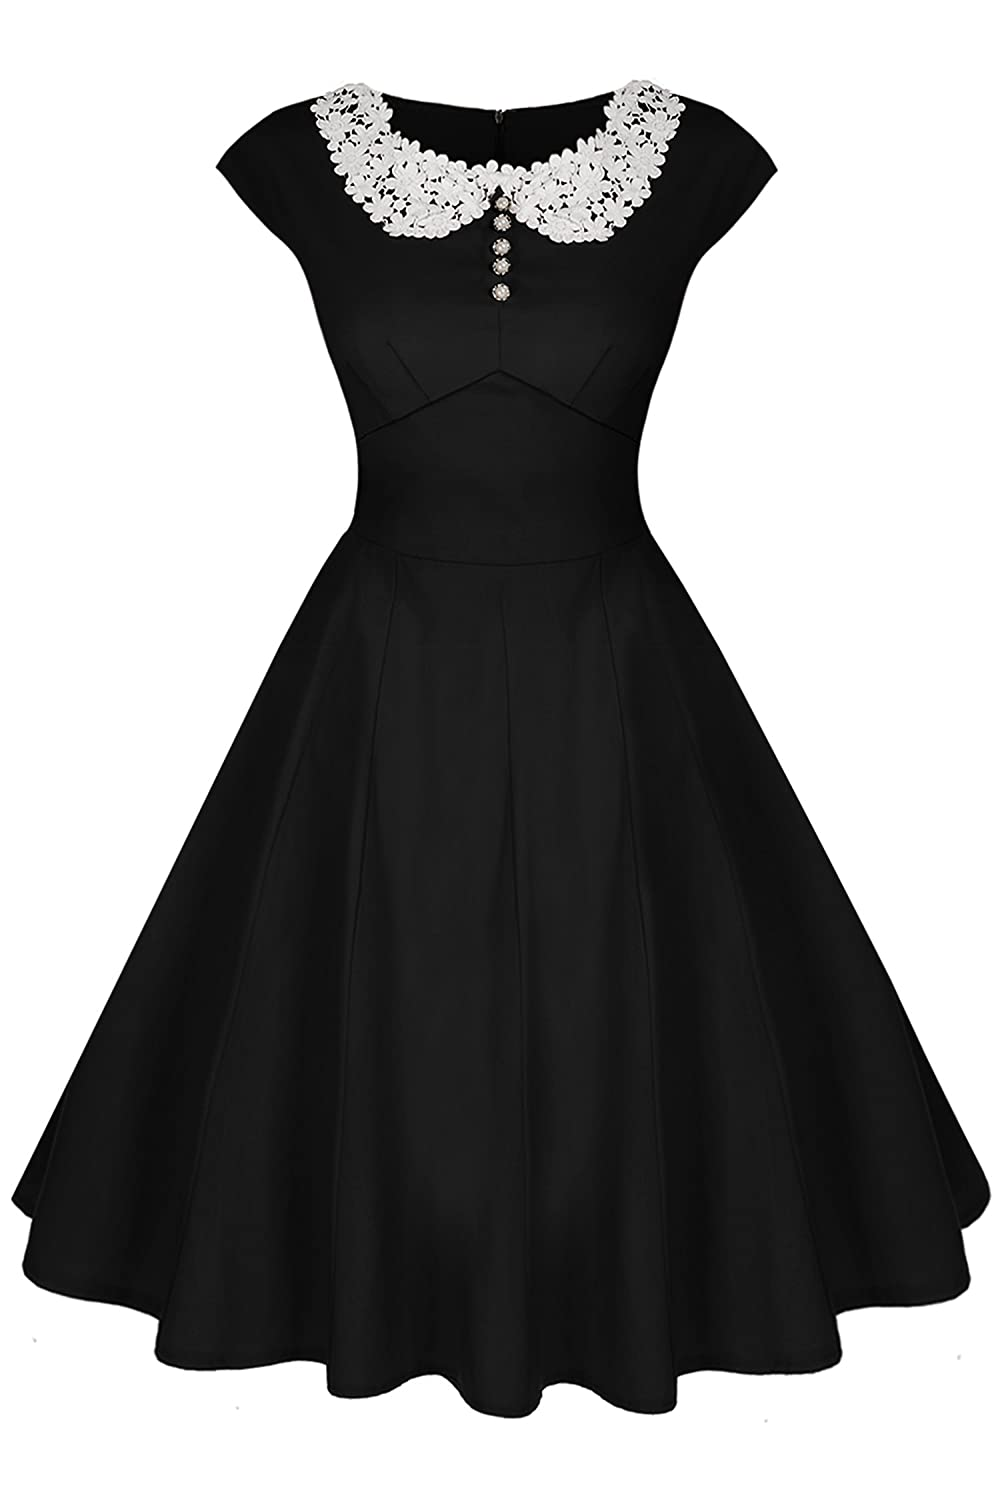 Plus Size Vintage Dresses, Plus Size Retro Dresses Audrey Hepburn Style 1940s Rockabilly Evening Dress  AT vintagedancer.com